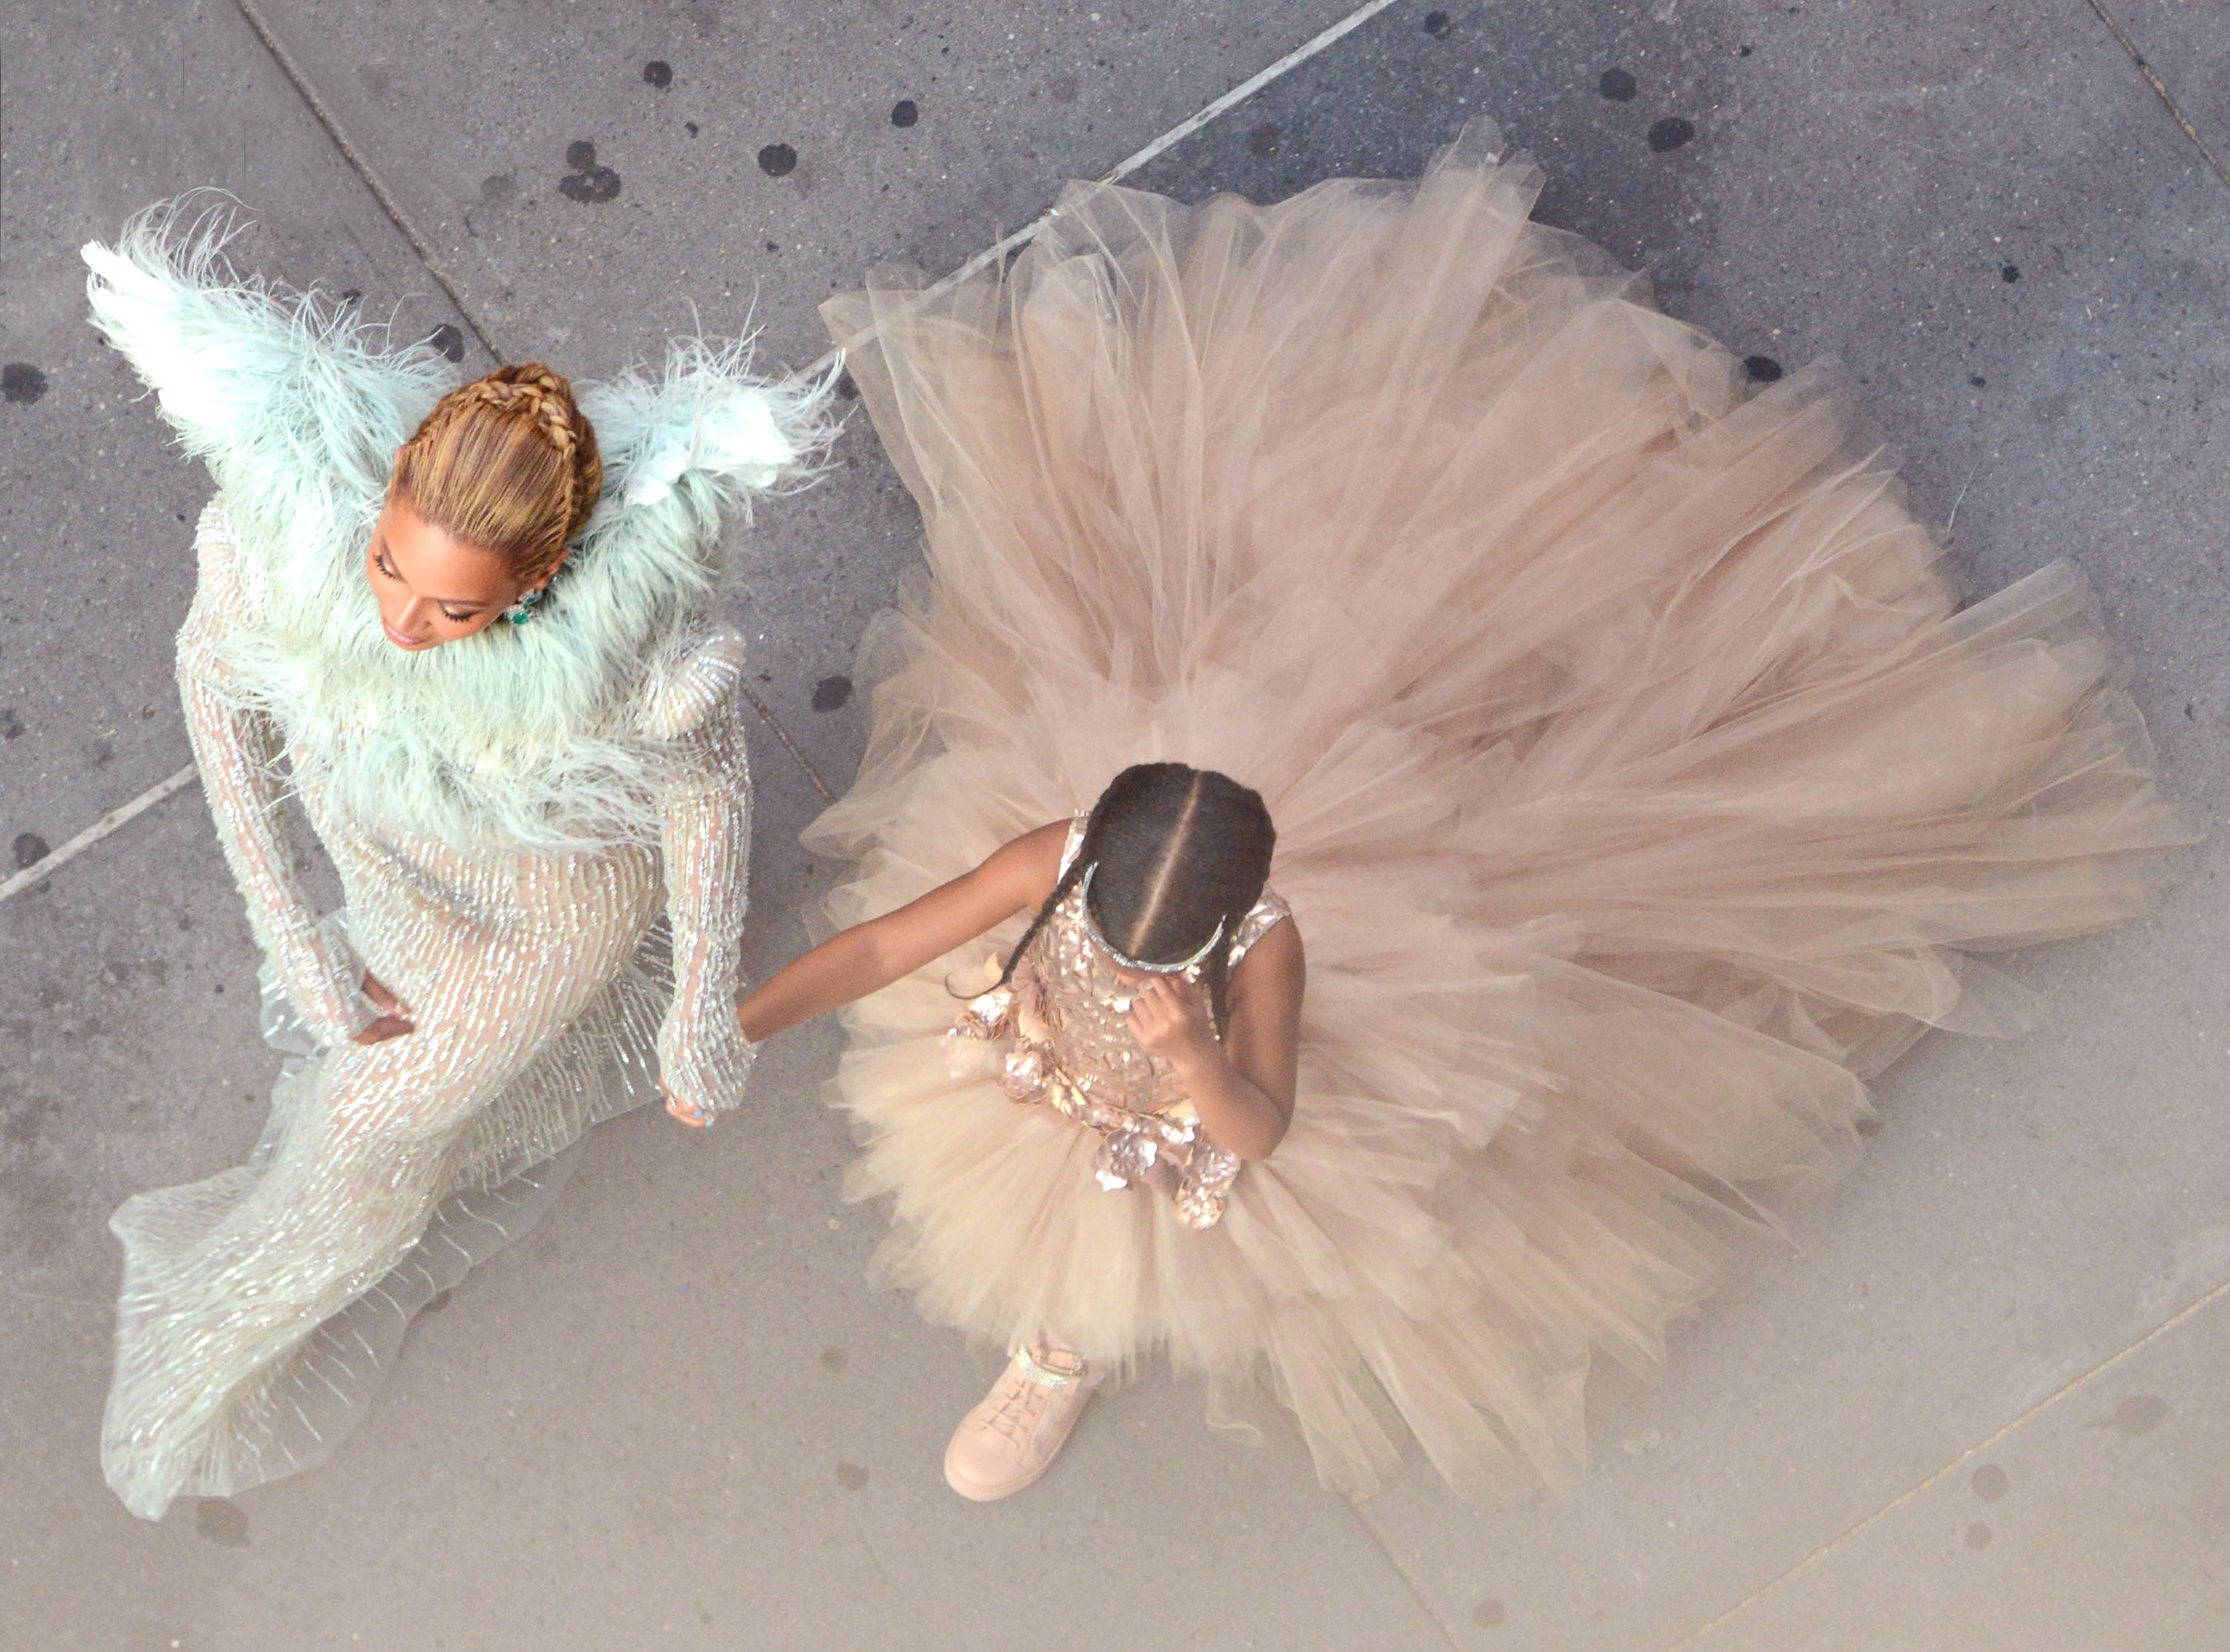 VMA - Blue Ivy & Beyonce Embed 2